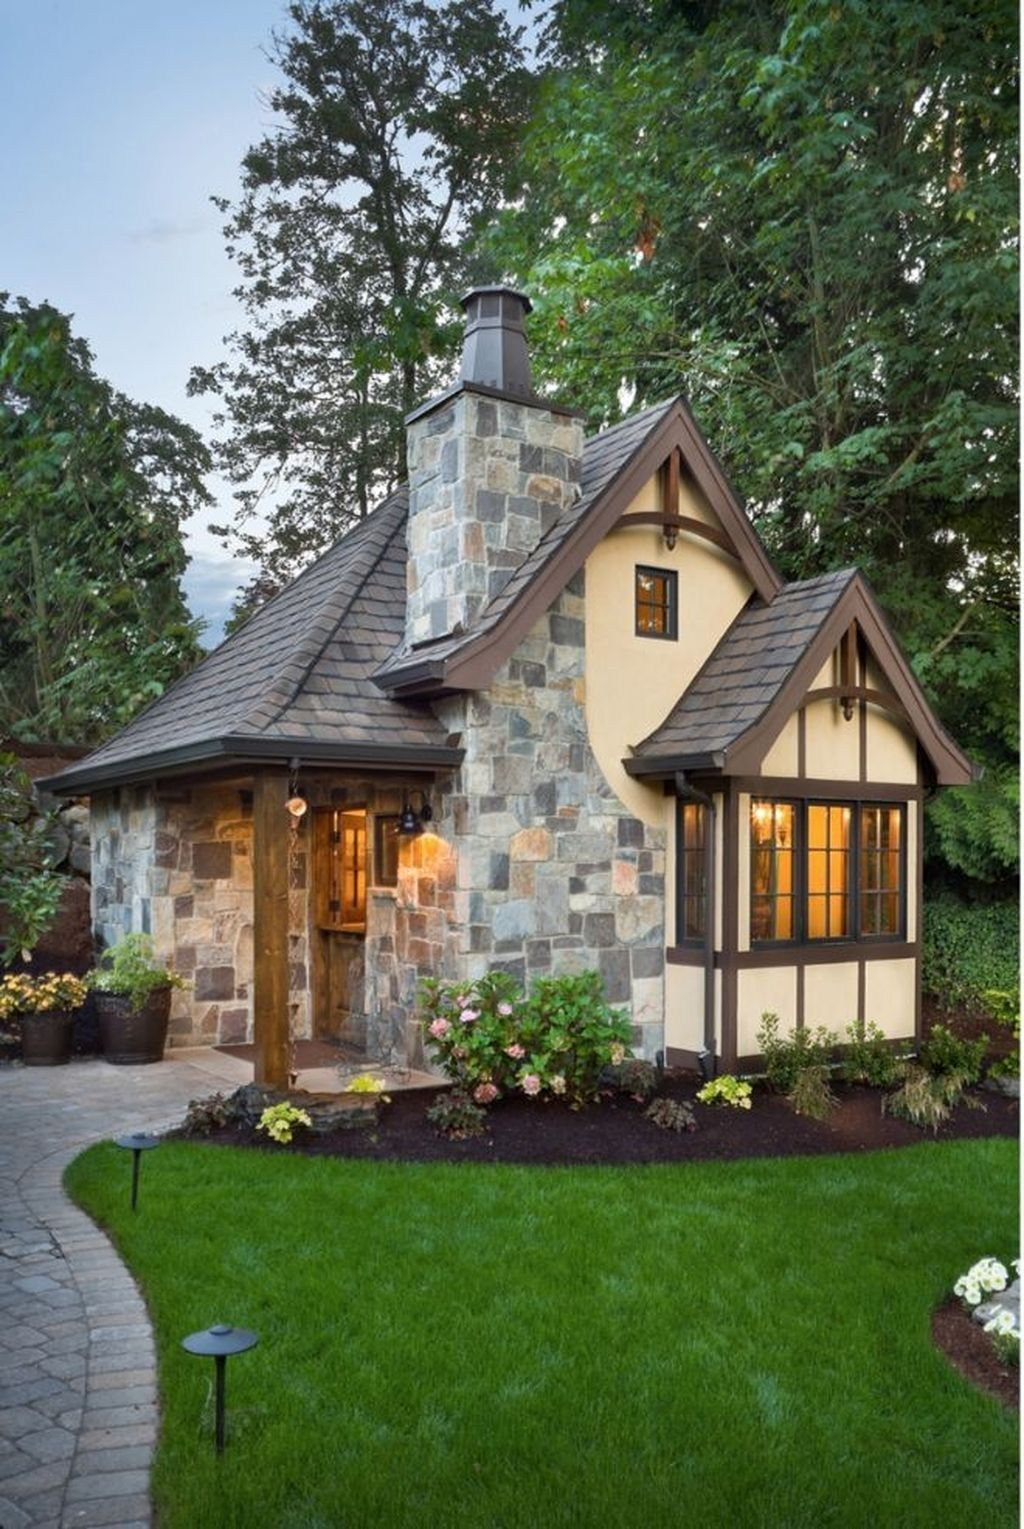 42 Awesome Tiny House Ideas Cottage House Designs Small Cottage Homes Cottage House Plans